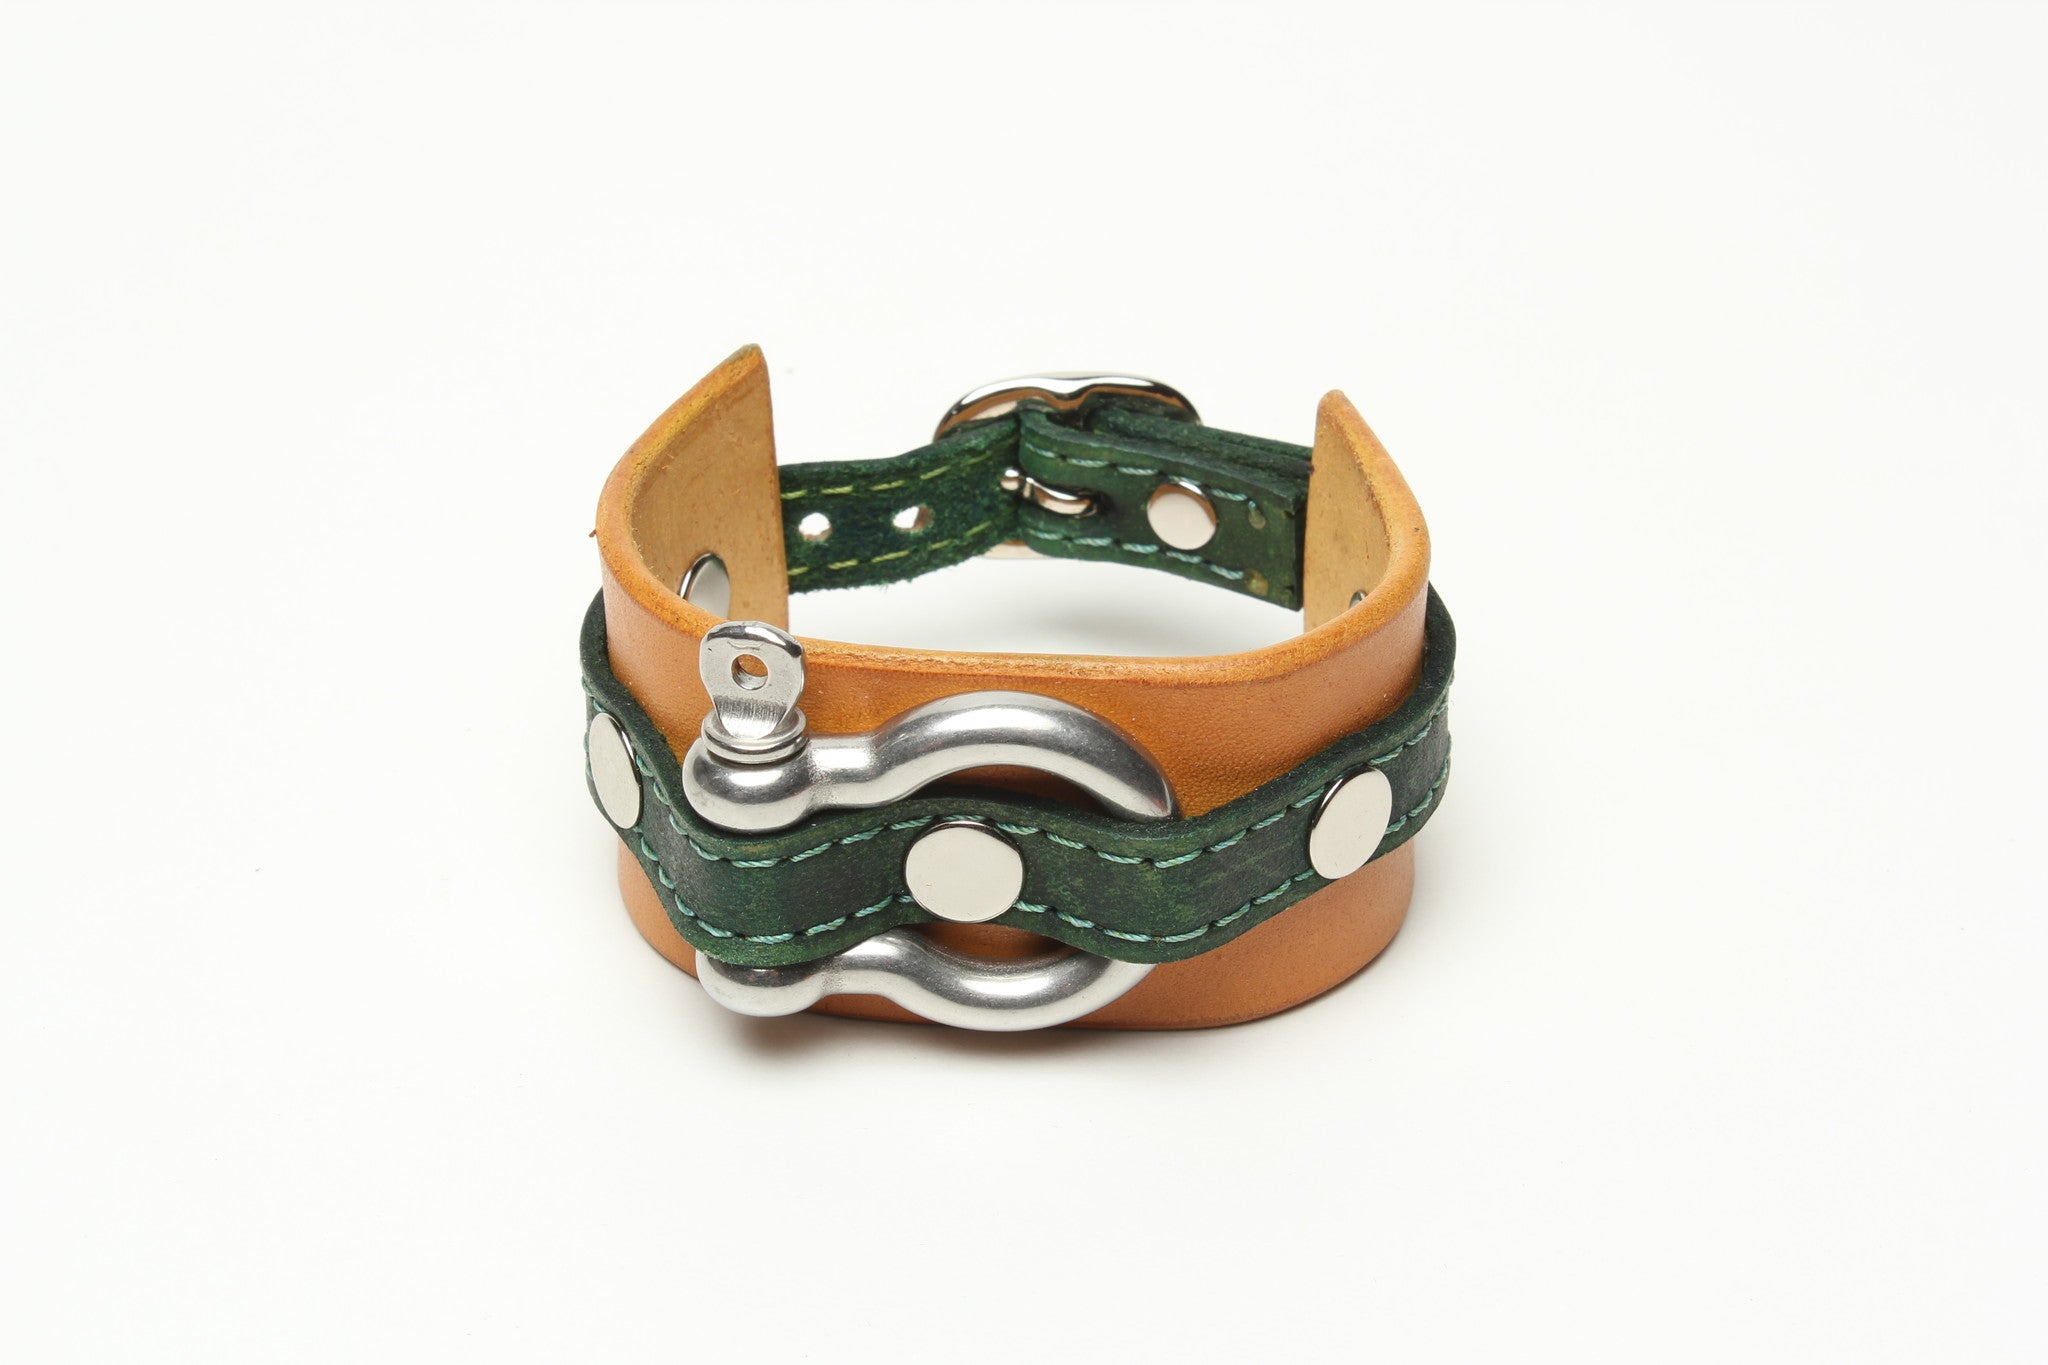 LATIGO LEATHER CUFF WITH ANCHOR SHACKLE bicolor by nyet jewelry.